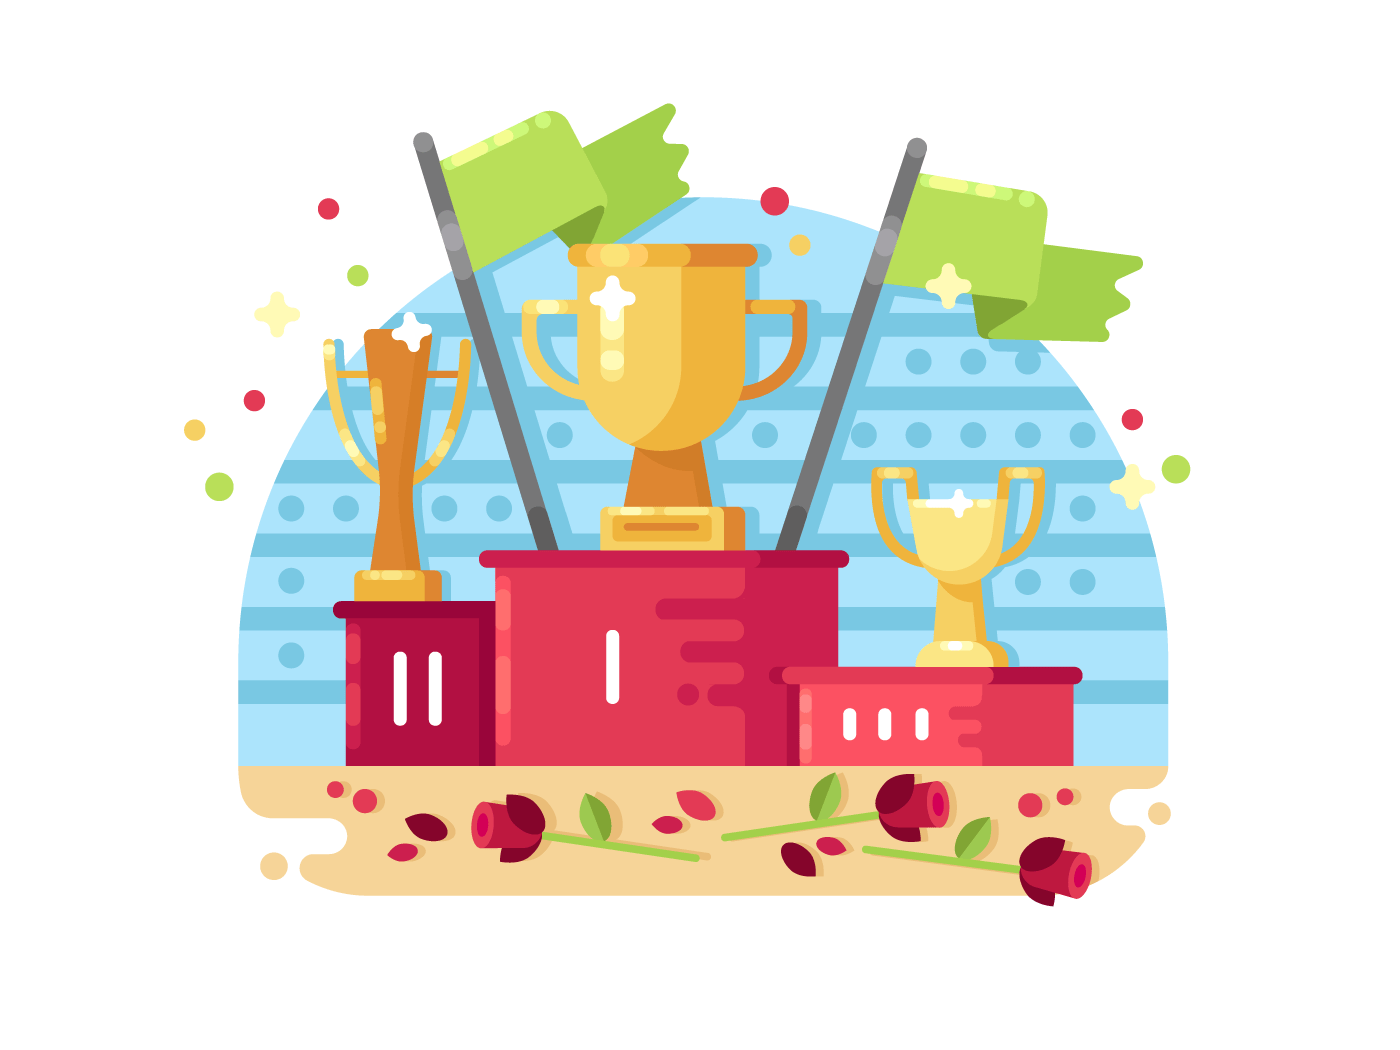 Trophies on podium illustration